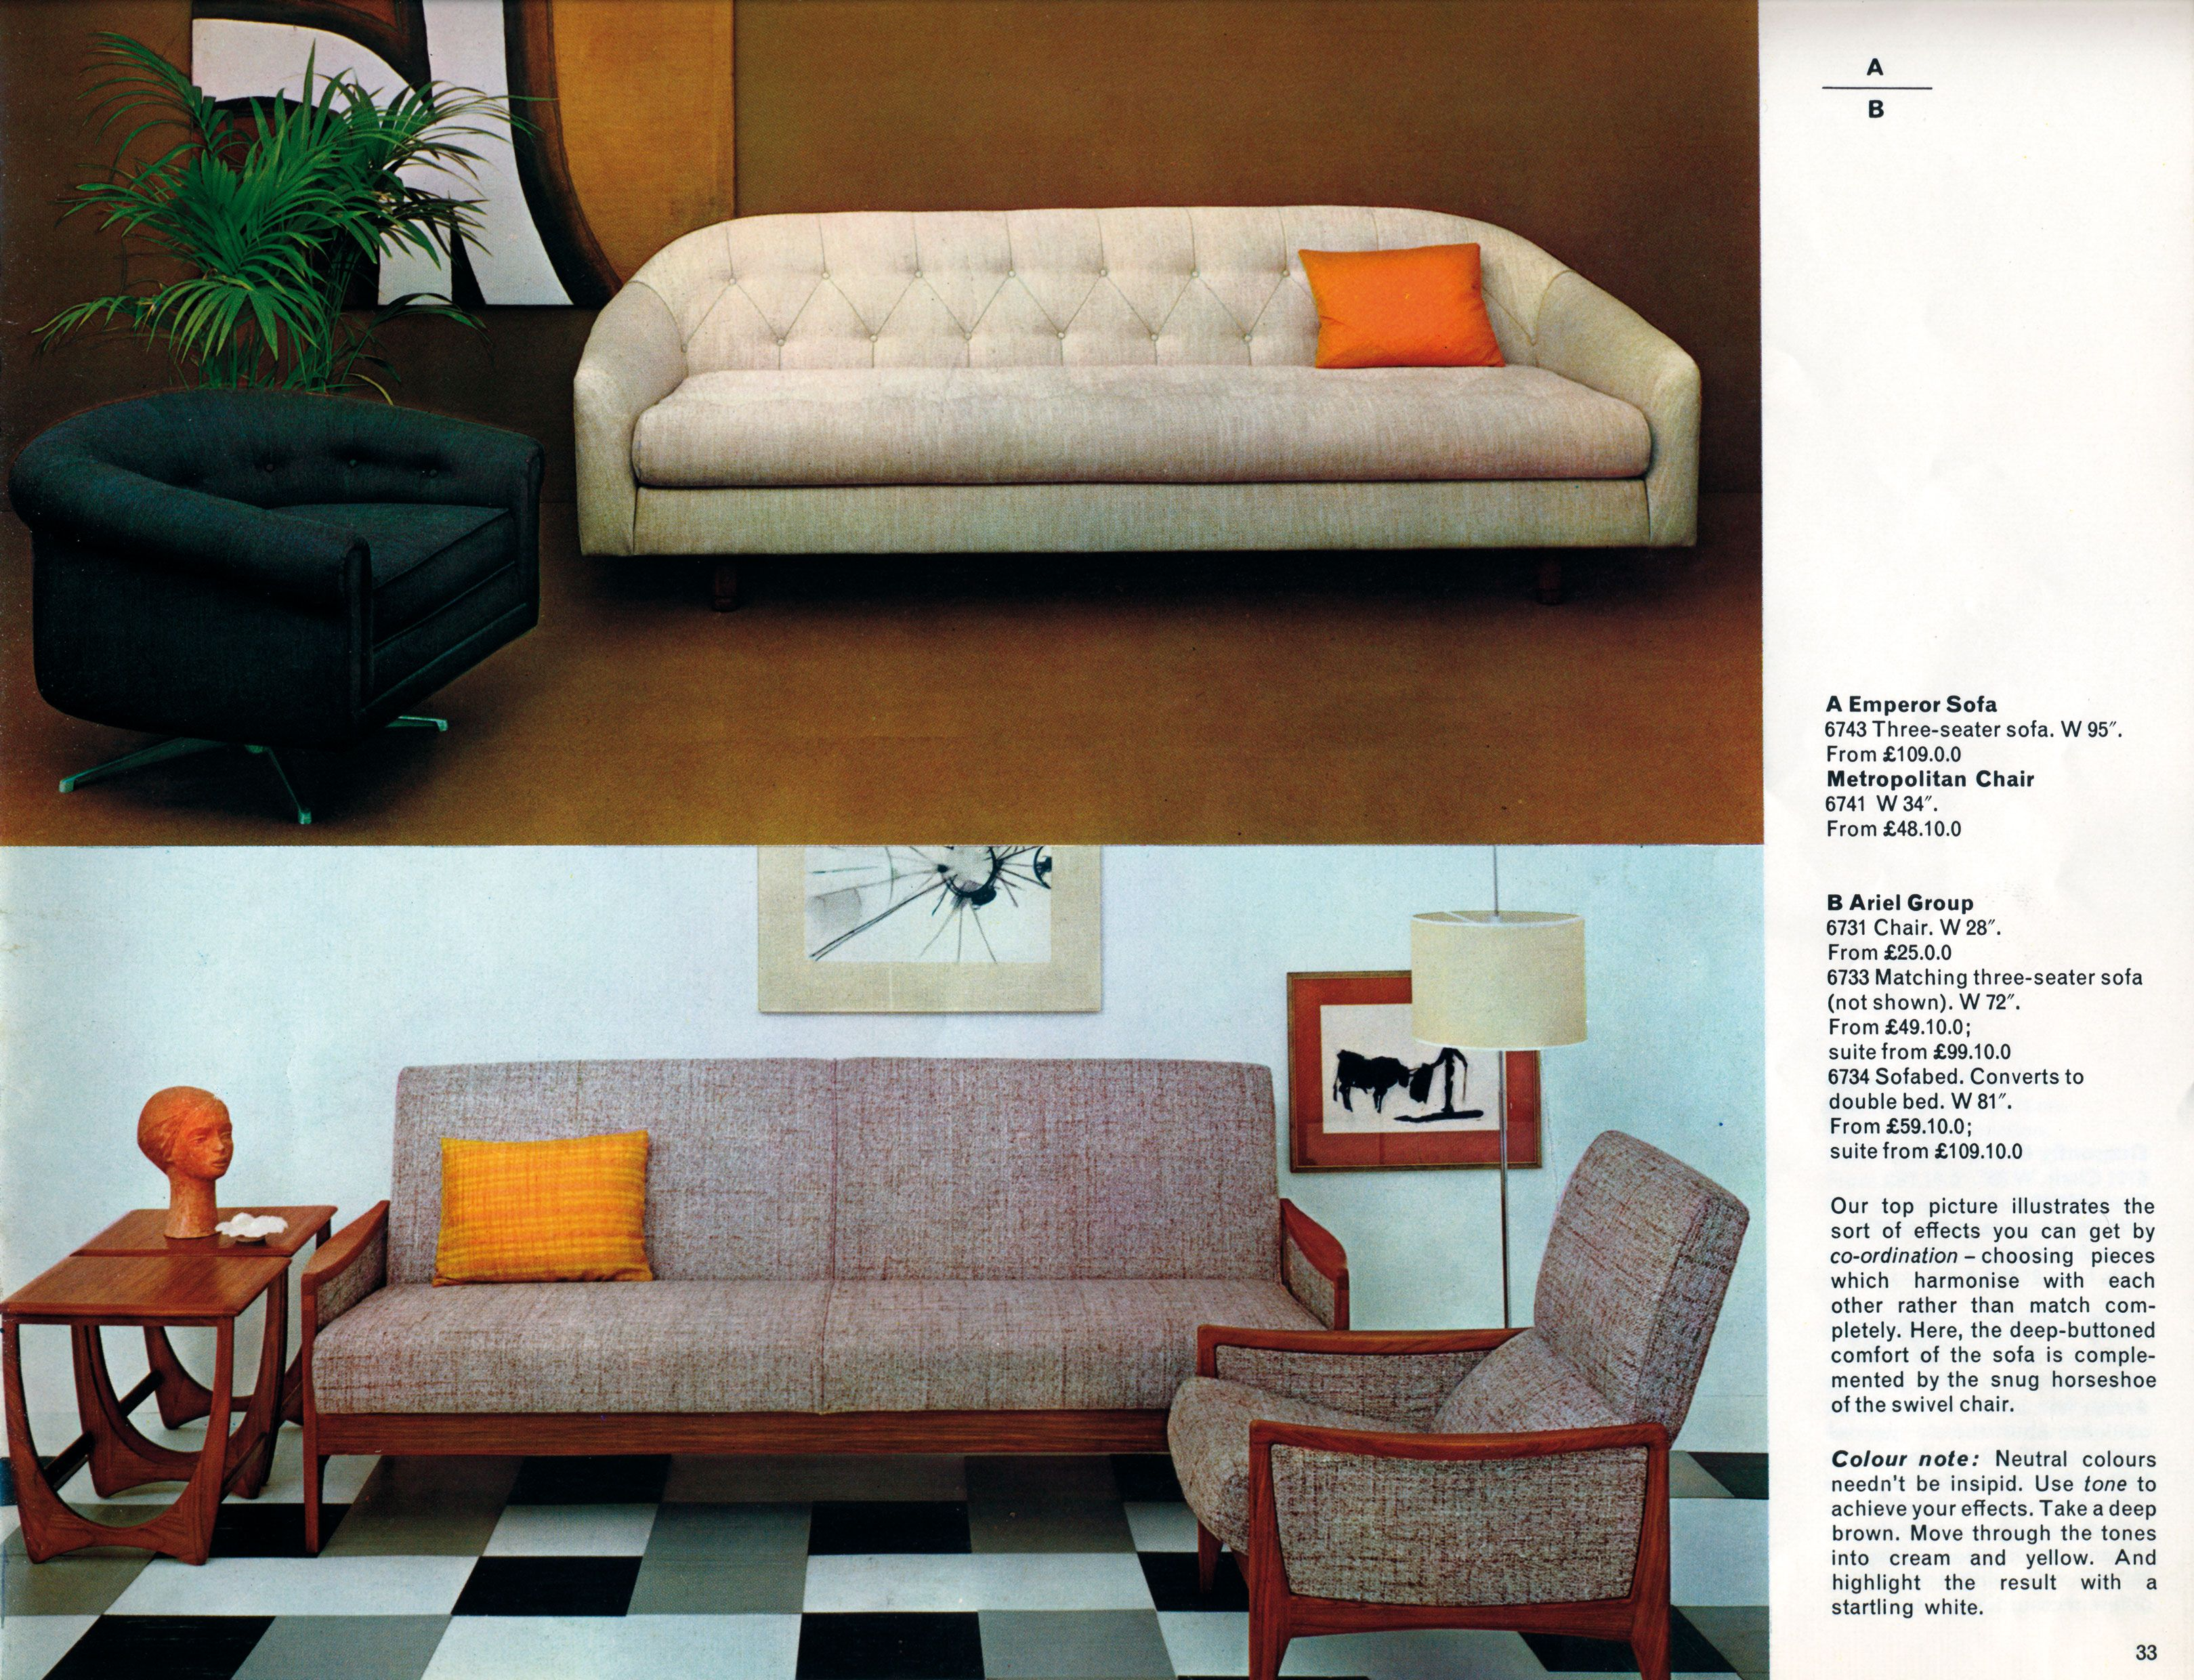 Original G Plan Designs From The Mid Century The Metropolitan Chair Top Left And The Emperor Sofa Top Right Which Inspir Home Furniture Vintage Interiors